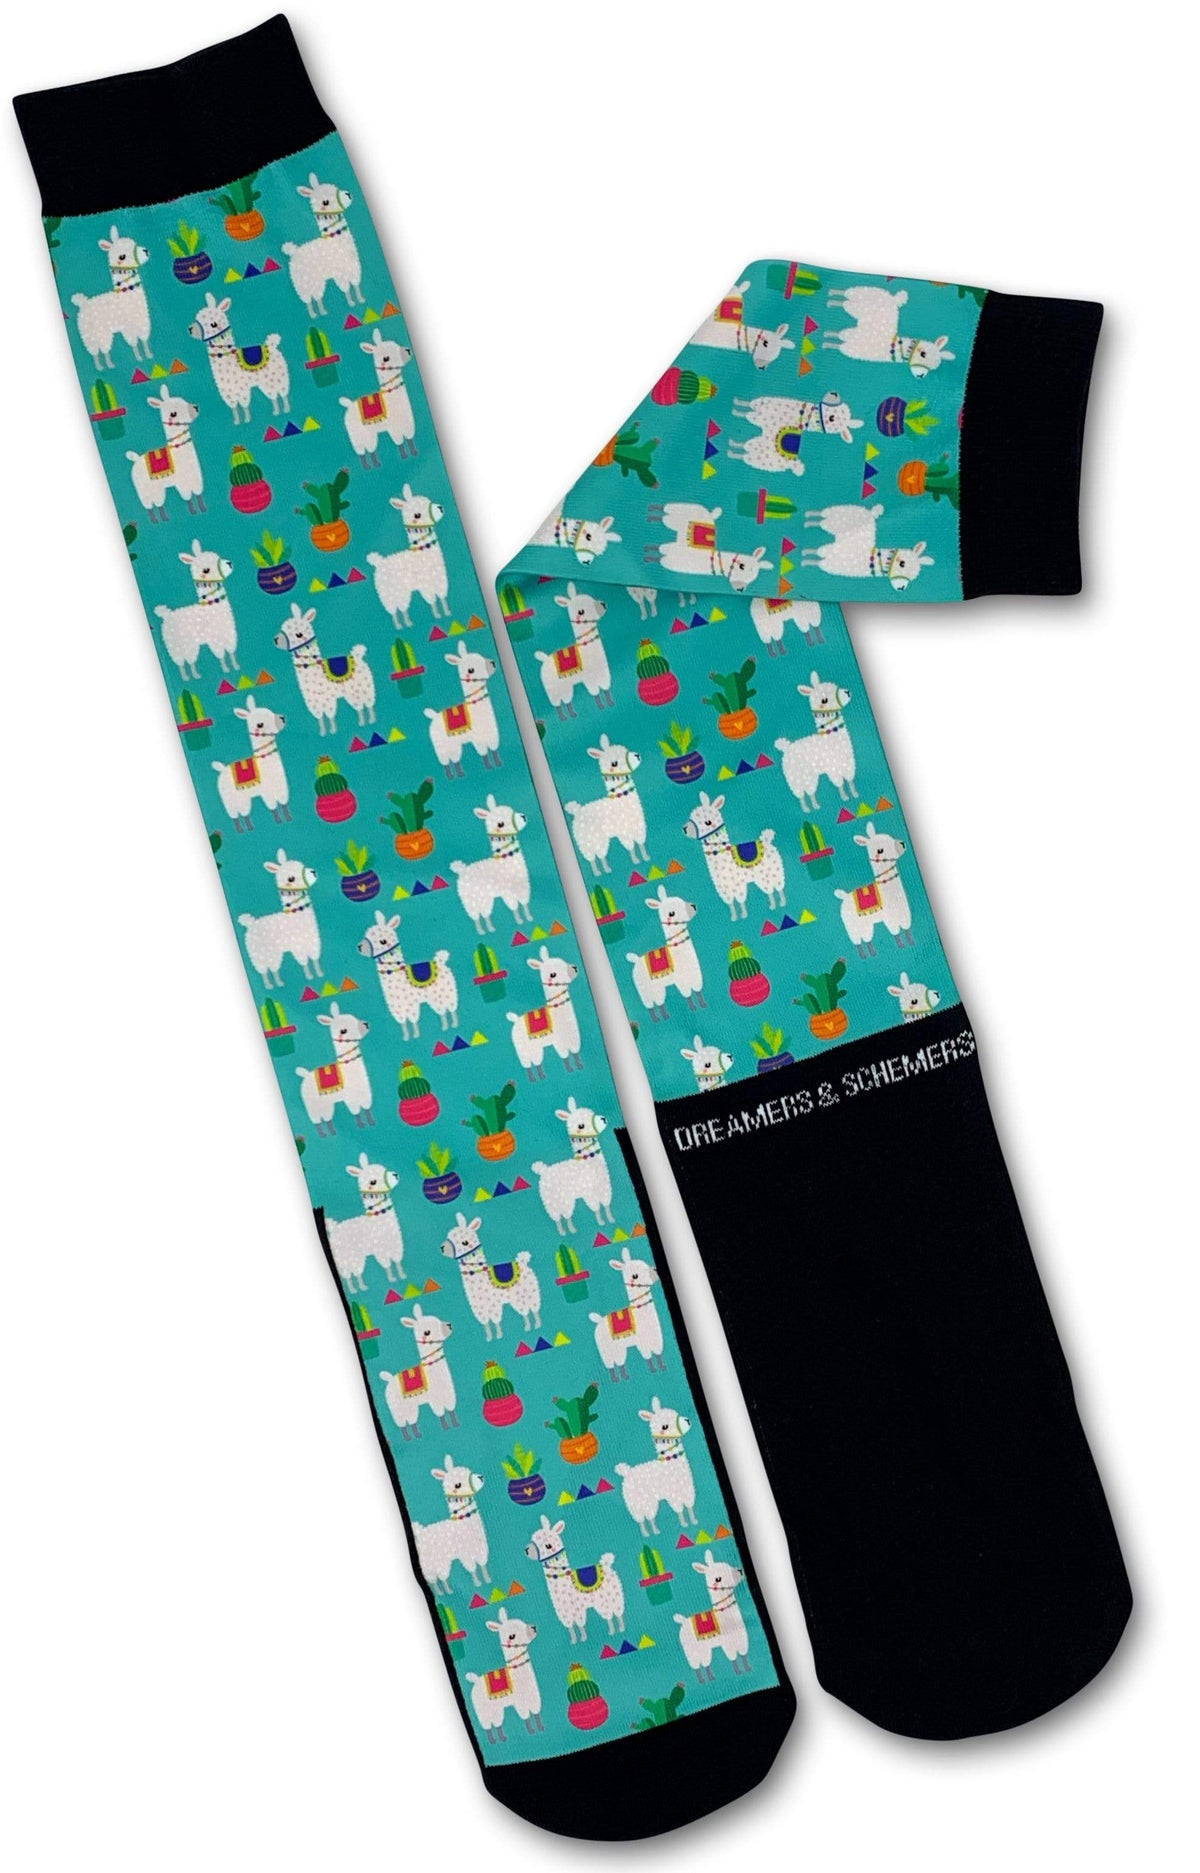 Dreamers & Schemers Socks My Llama Don't Like You Socks equestrian team apparel online tack store mobile tack store custom farm apparel custom show stable clothing equestrian lifestyle horse show clothing riding clothes horses equestrian tack store